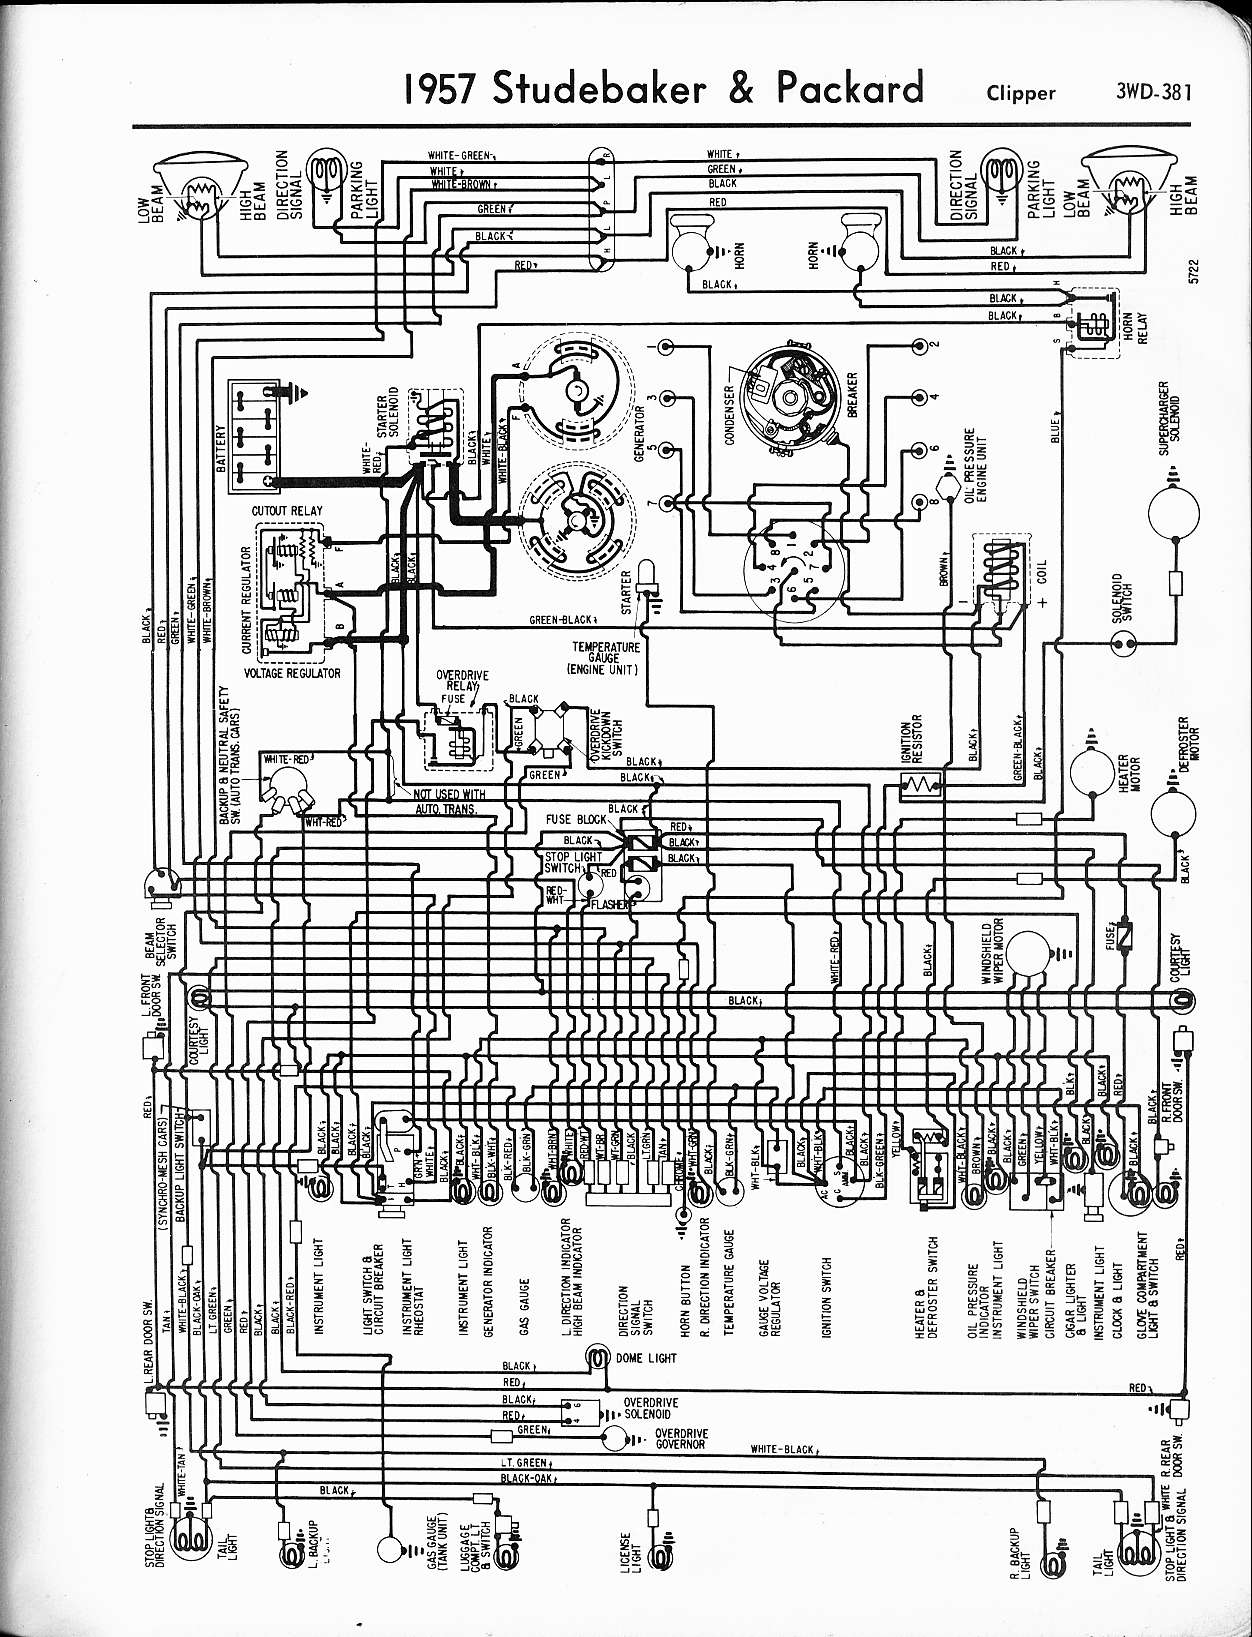 1949 packard wiring diagram wiring diagrams schematics rh woodmart co Club Cart Battery Wiring Diagram 2009 Club Car Wiring Diagram